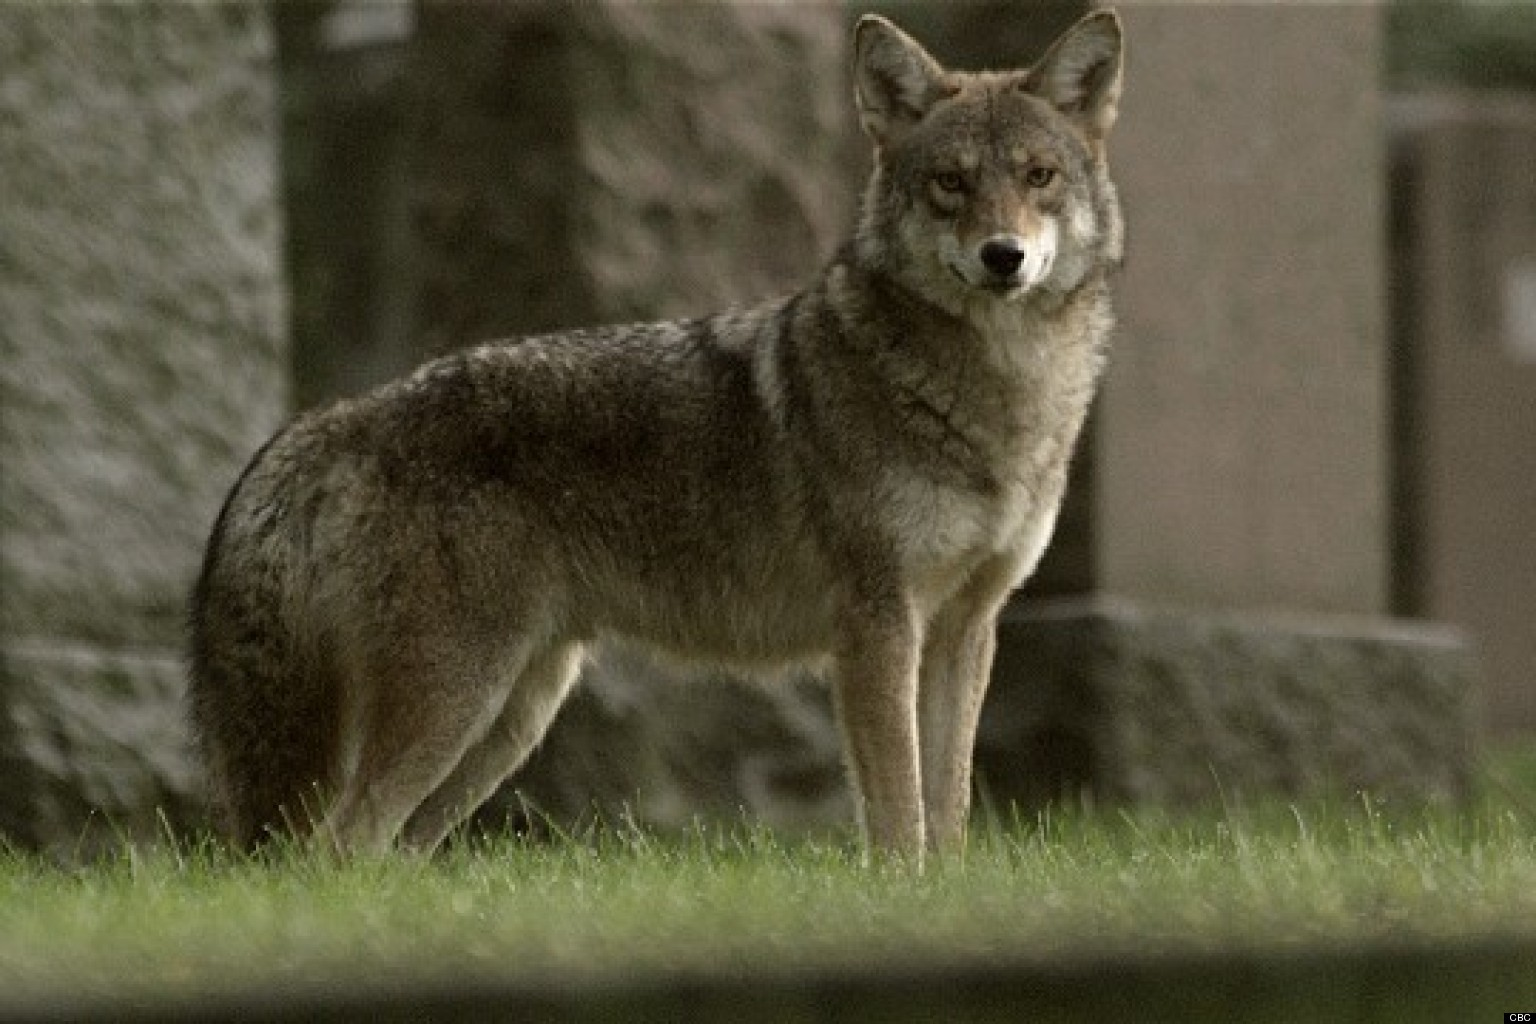 http://i.huffpost.com/gen/980356/thumbs/o-MEET-THE-COYWOLF-SUSAN-FLEMING-facebook.jpg